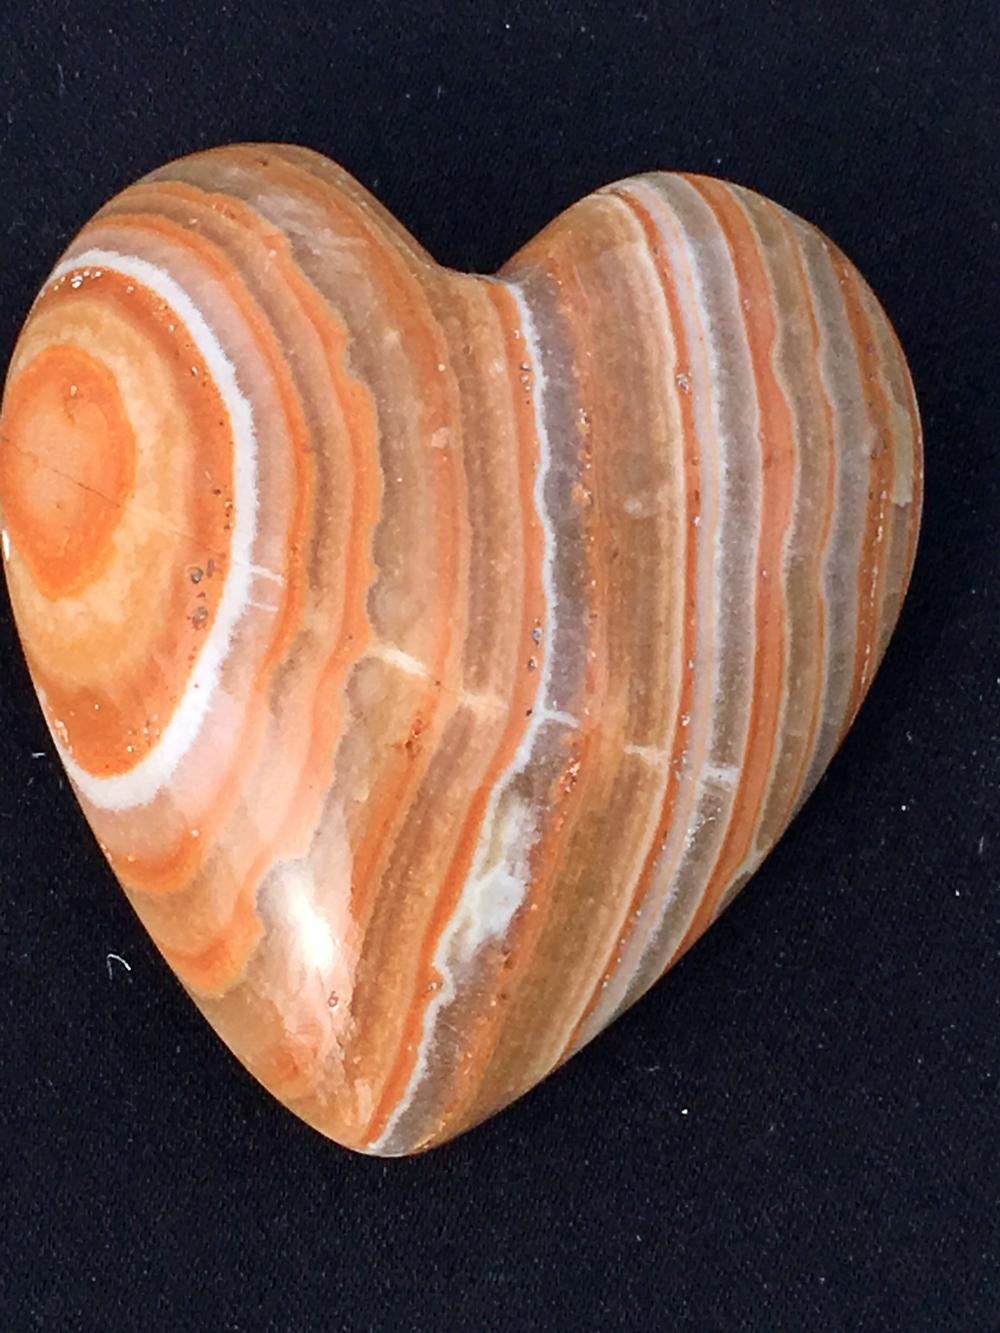 Lot 54: Onyx, Rock, Crystal, Natural, Collectible, Carving, Heart